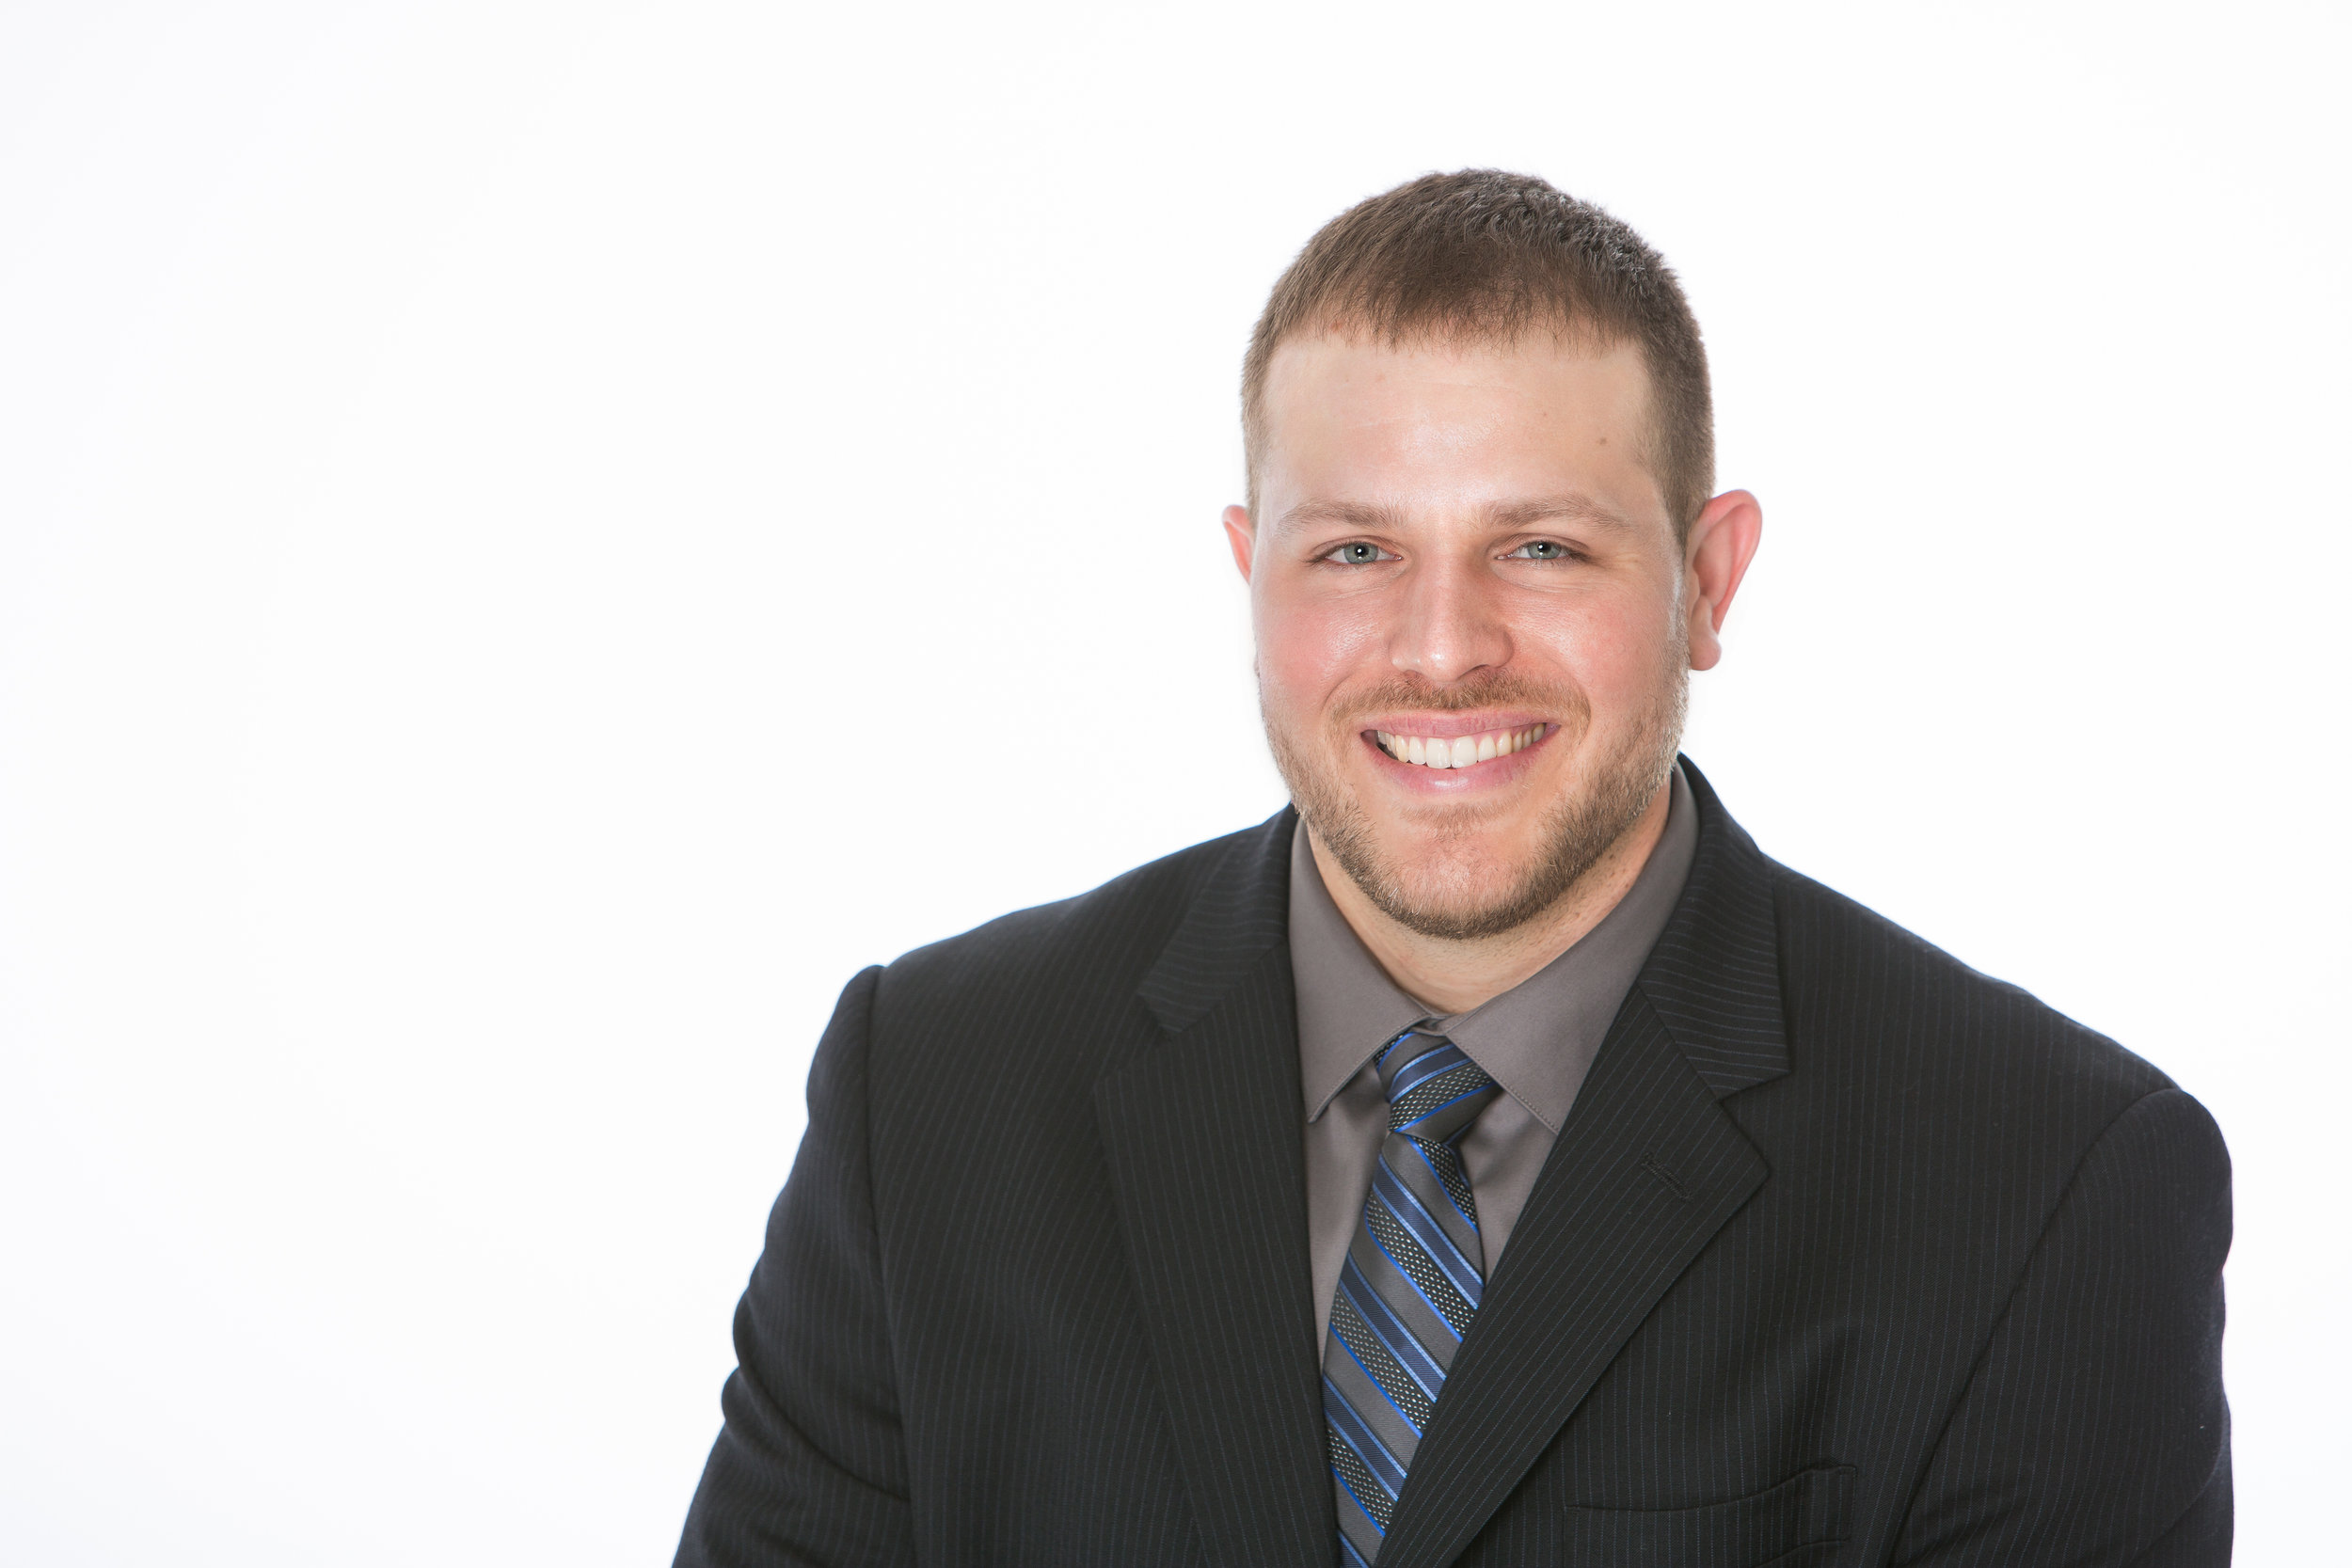 Nick SandersPT, DPT CSCS, CIDN - Founder / Doctor of Physical Therapy